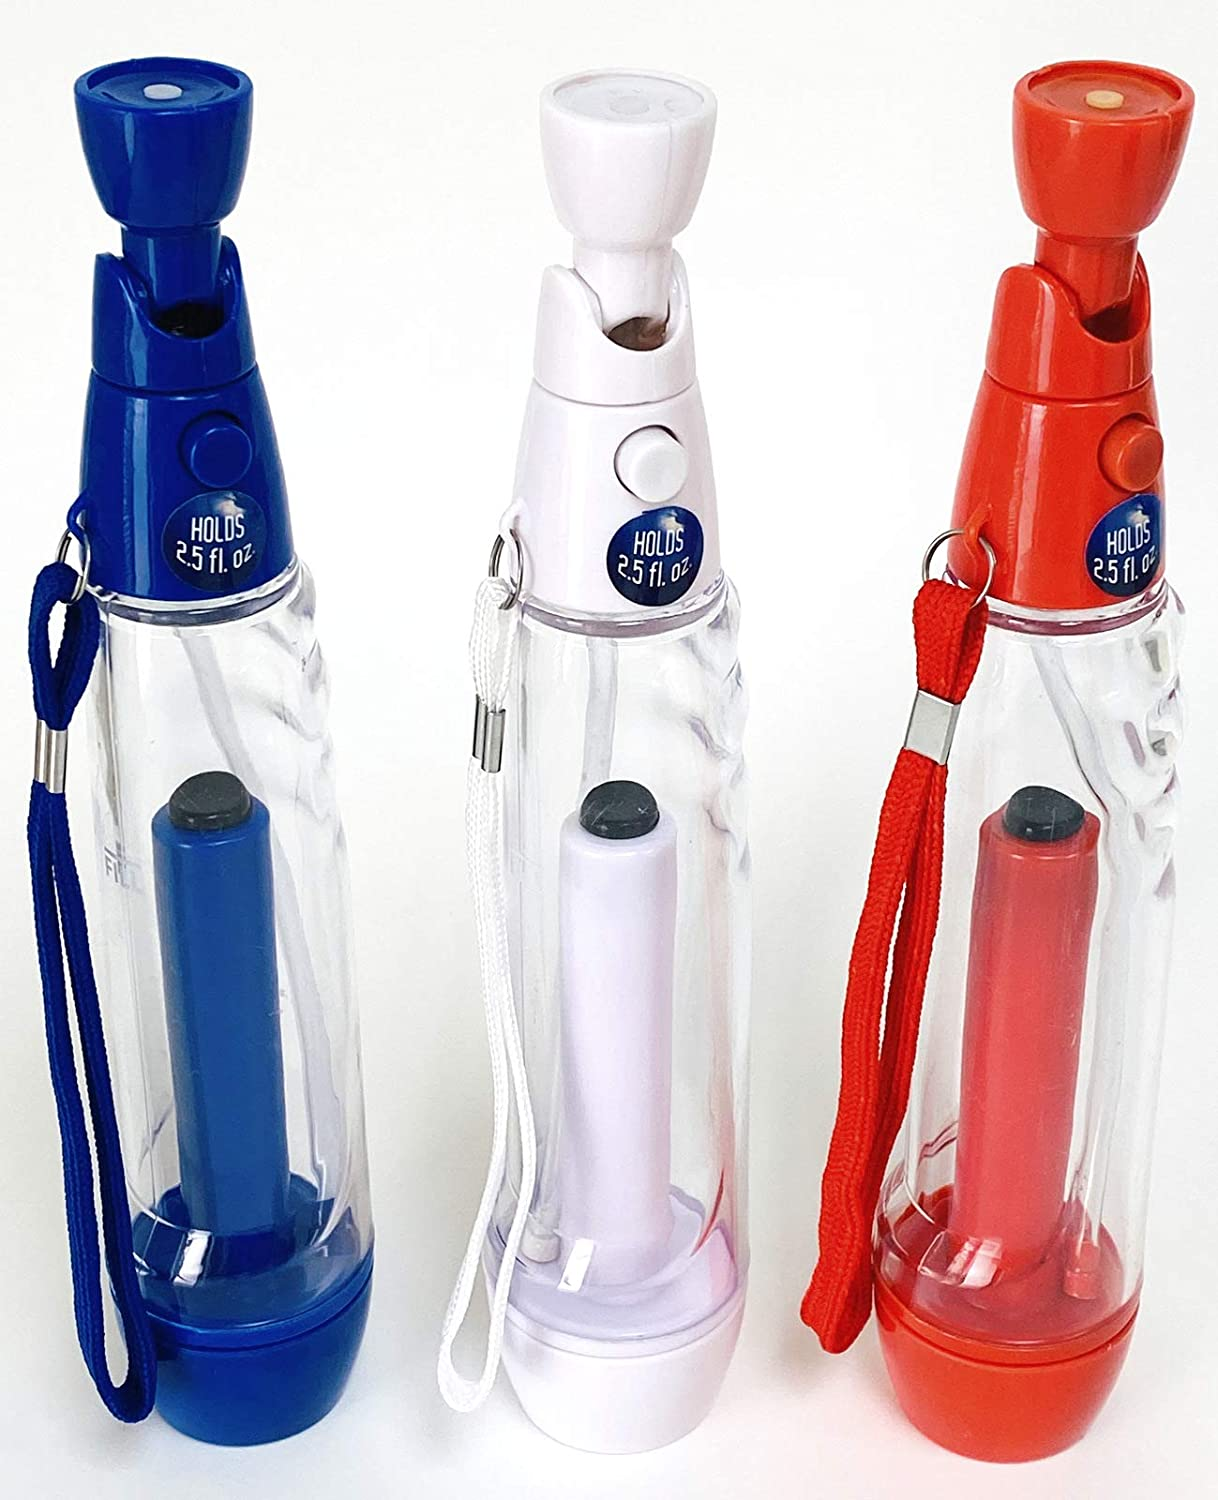 3 Water Mister Sprayer - Patriotic USA colors Red White & Blue - Continuous Fine Mist Face Cooling Pump Sprayer - Summer Camping Patio Hiking BBQ Picnic Baseball & Outdoor Games & Activities Beach Travel